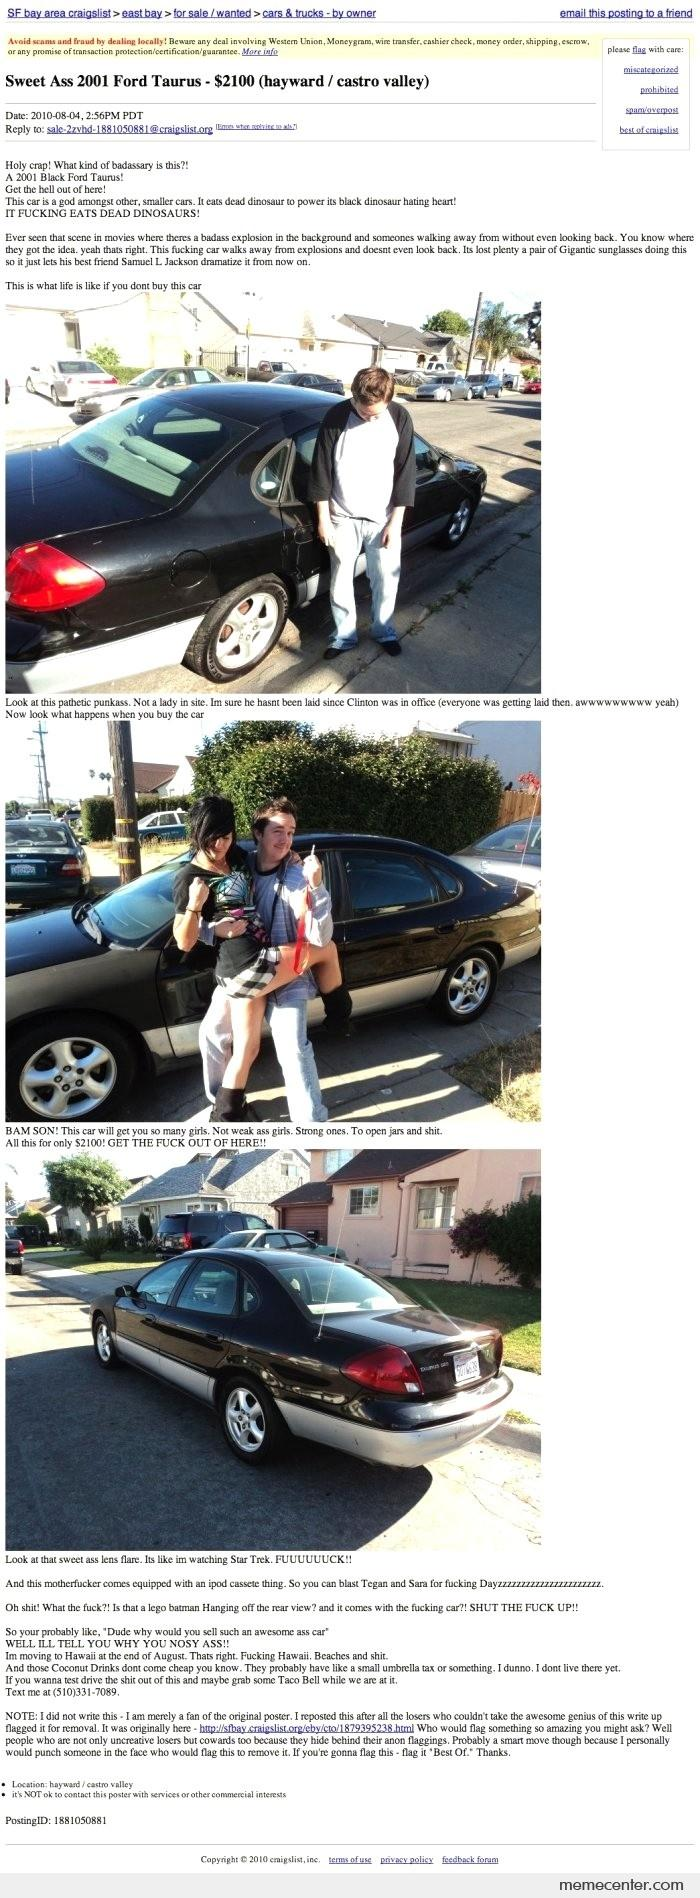 Most Design Ideas Craigslist Used Cars Under 1000 Pictures, And